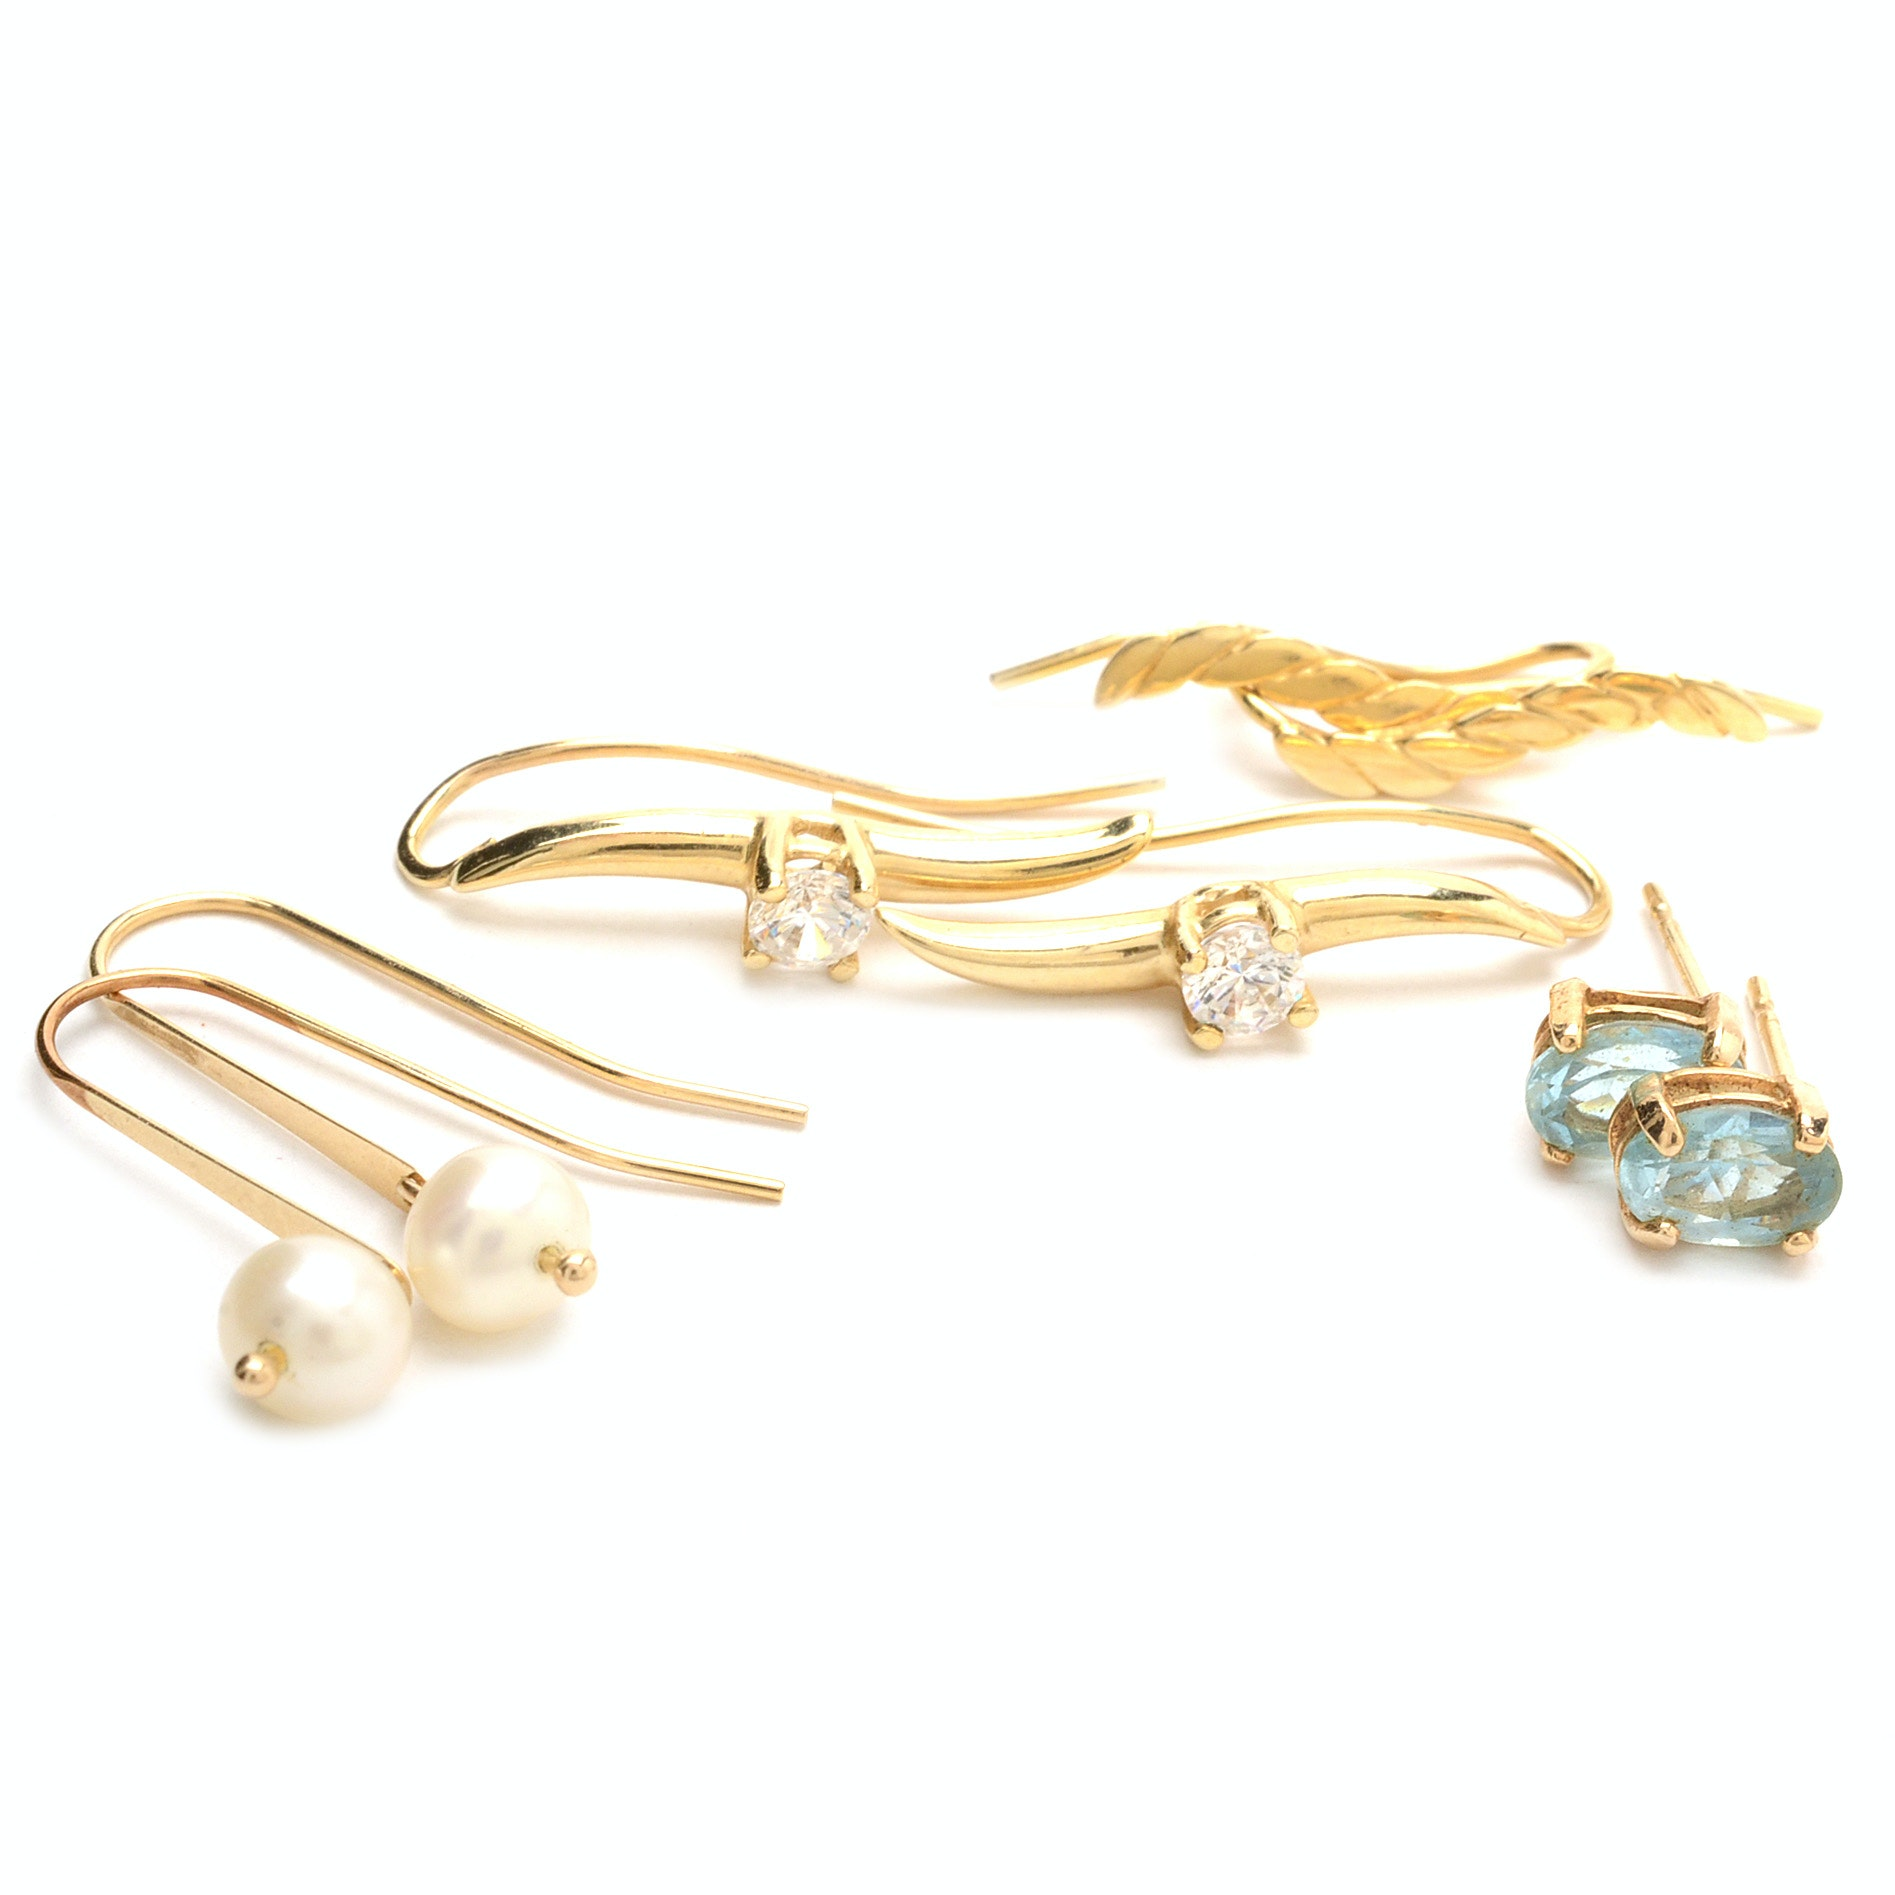 Four Pairs 14K Yellow Gold Earrings